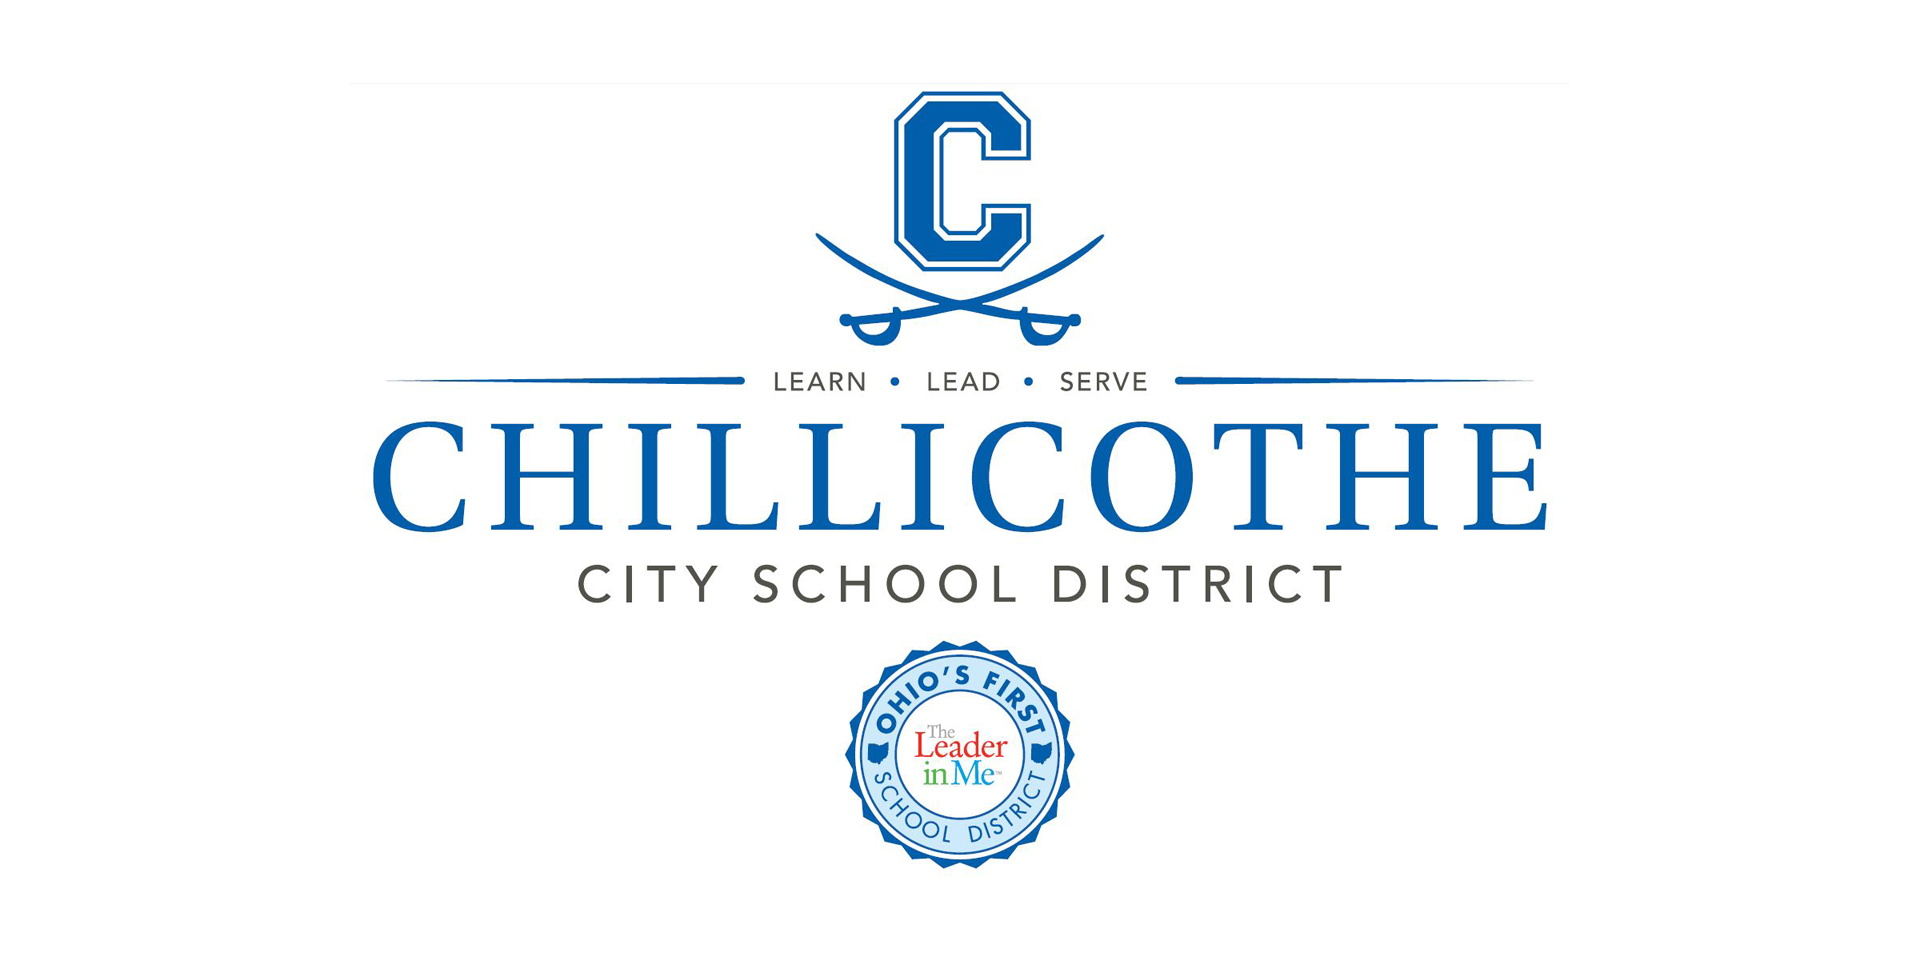 Chillicothe City School District logo.